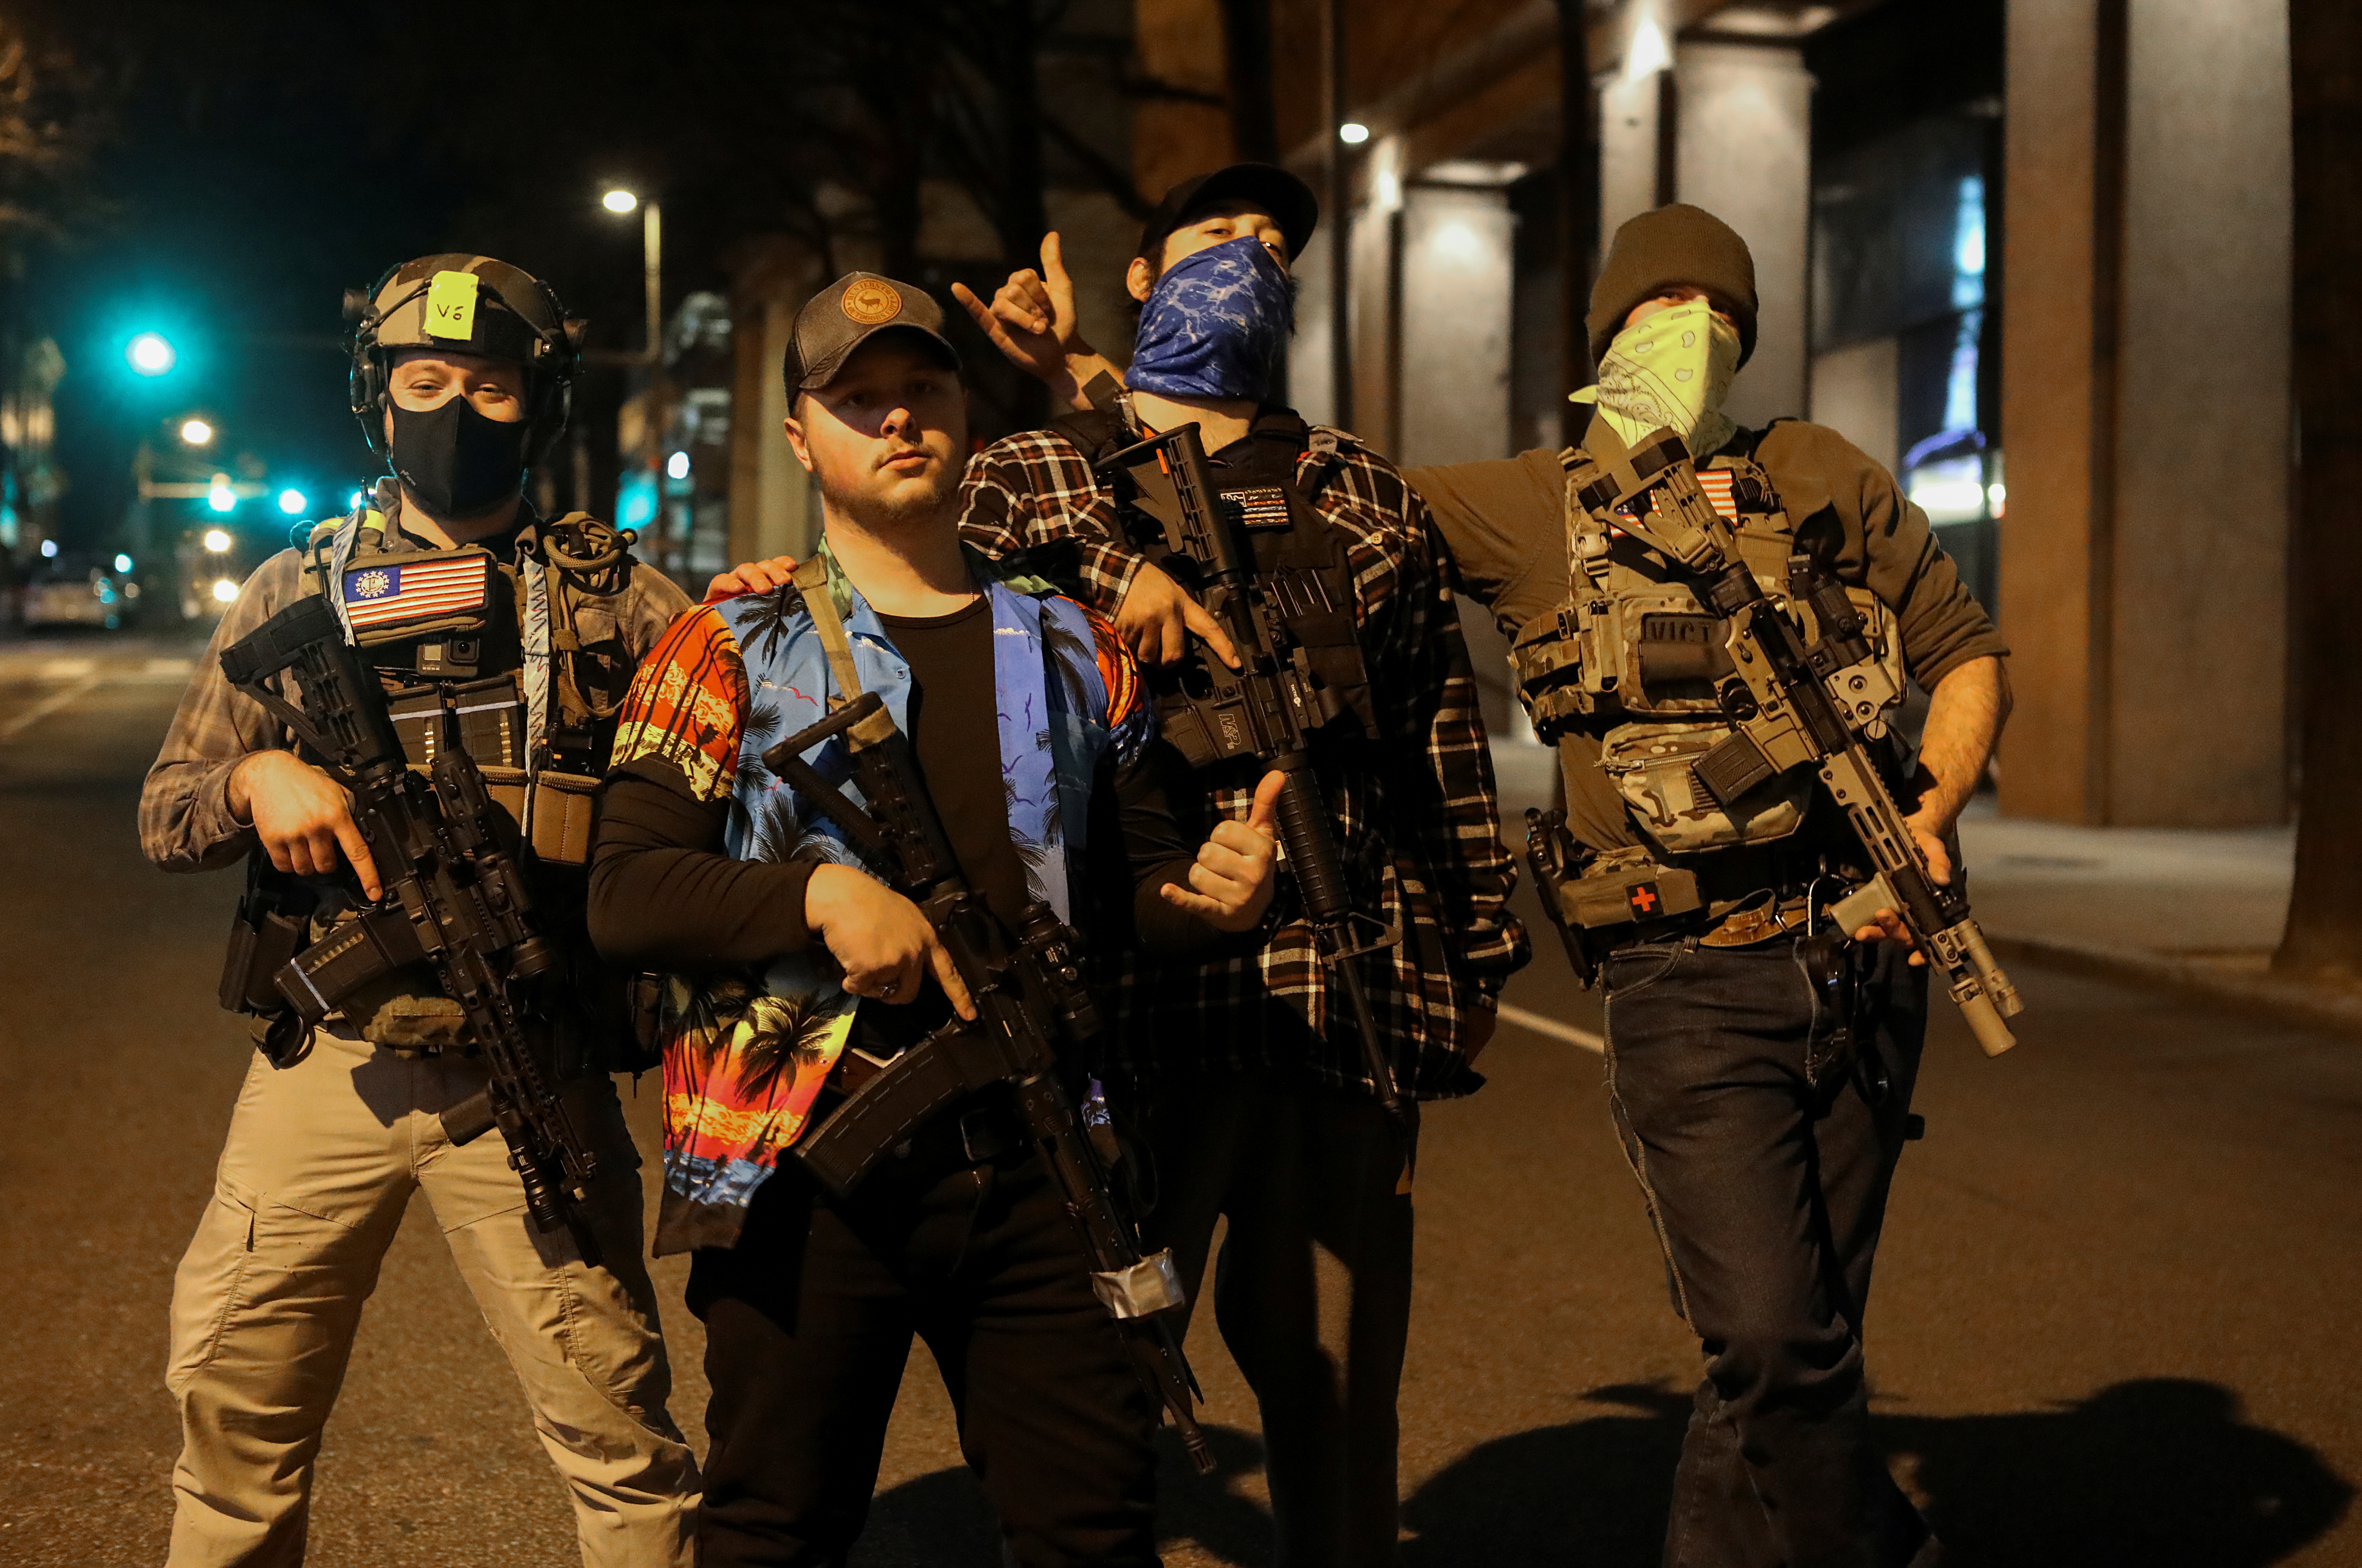 Mike Dunn, second from left, and other members of the Boogaloo Boys movement, pose for photos with their semi-automatic rifles, days ahead of President-elect Joe Biden inauguration, in Richmond, Virginia, U.S. January 17, 2021. REUTERS/Jim Urquhart